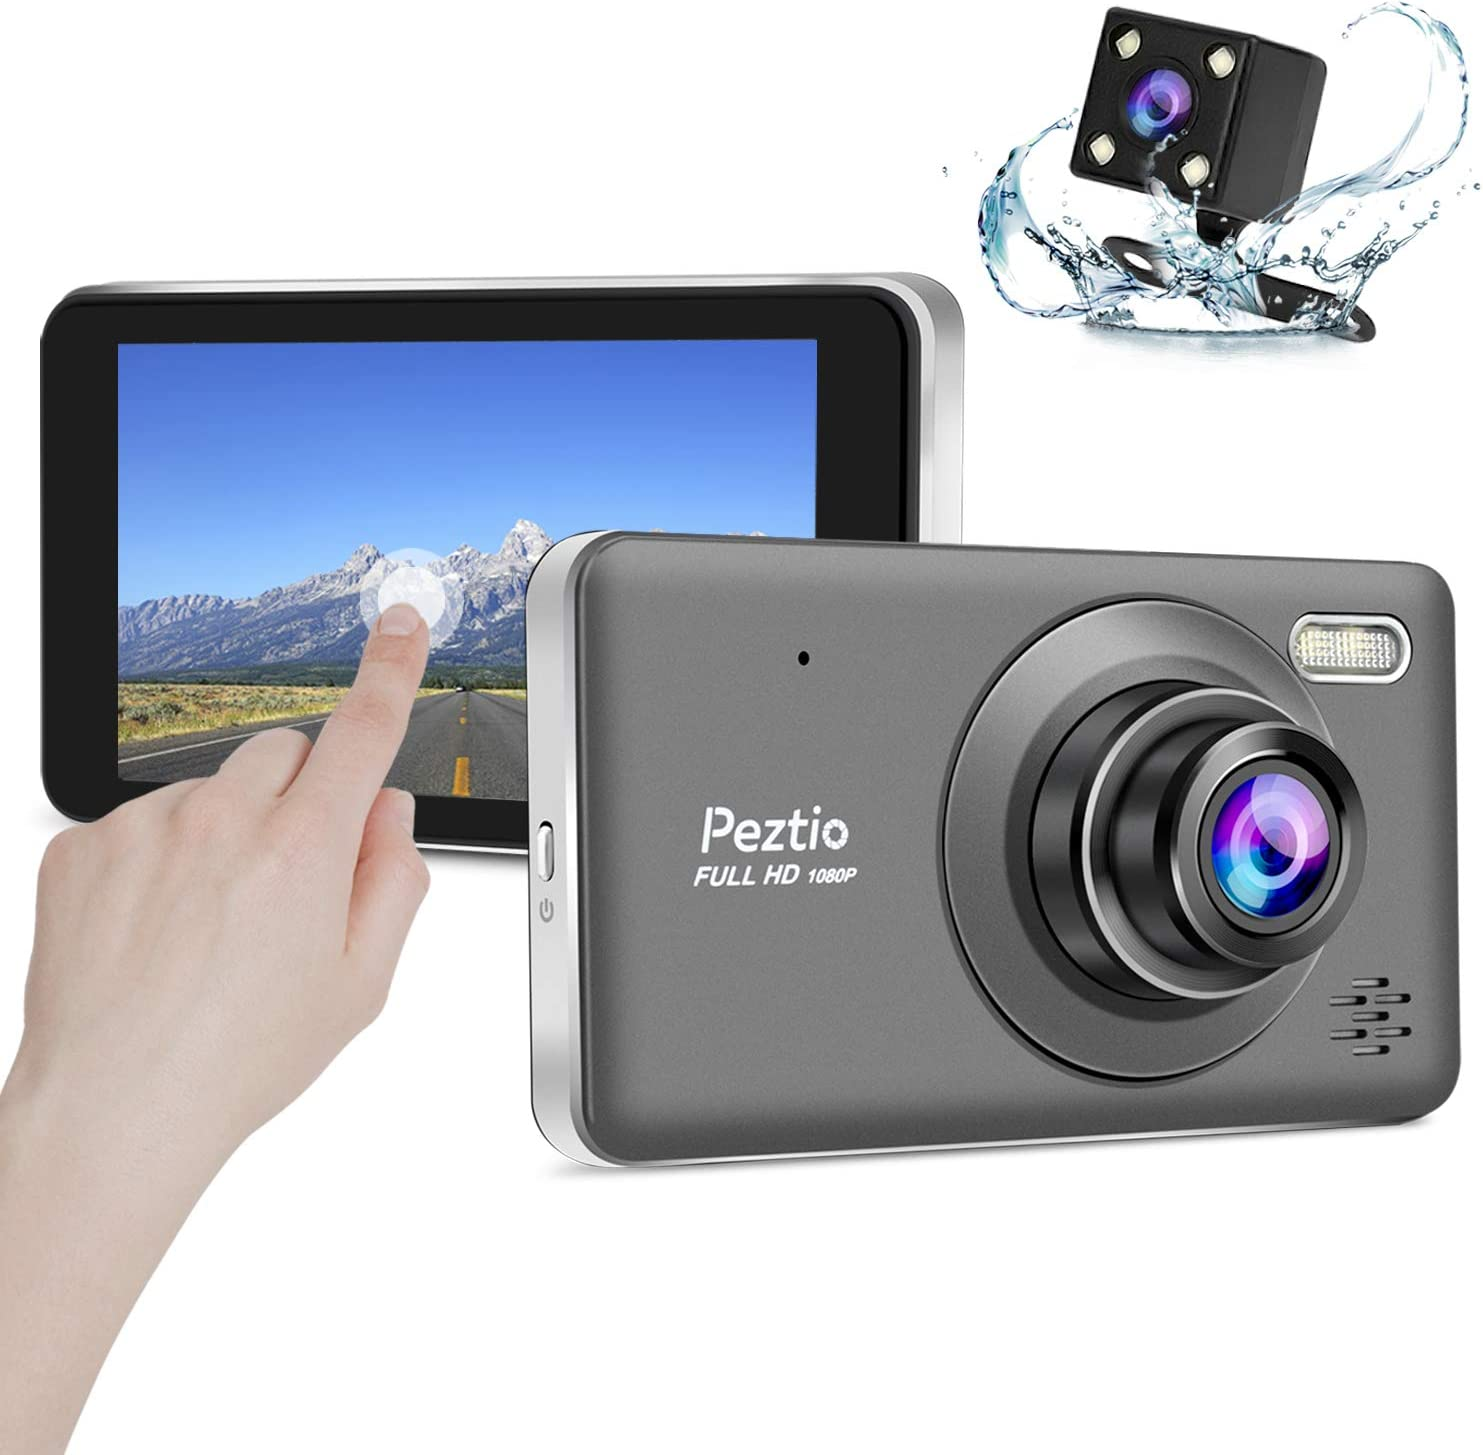 for Motorcycle Motorbike Dual Dash Cam 1080P Front and Rear Car Camera 1280 720P 3.0 IPS Waterproof,140/° Wide Angle Parking Mode